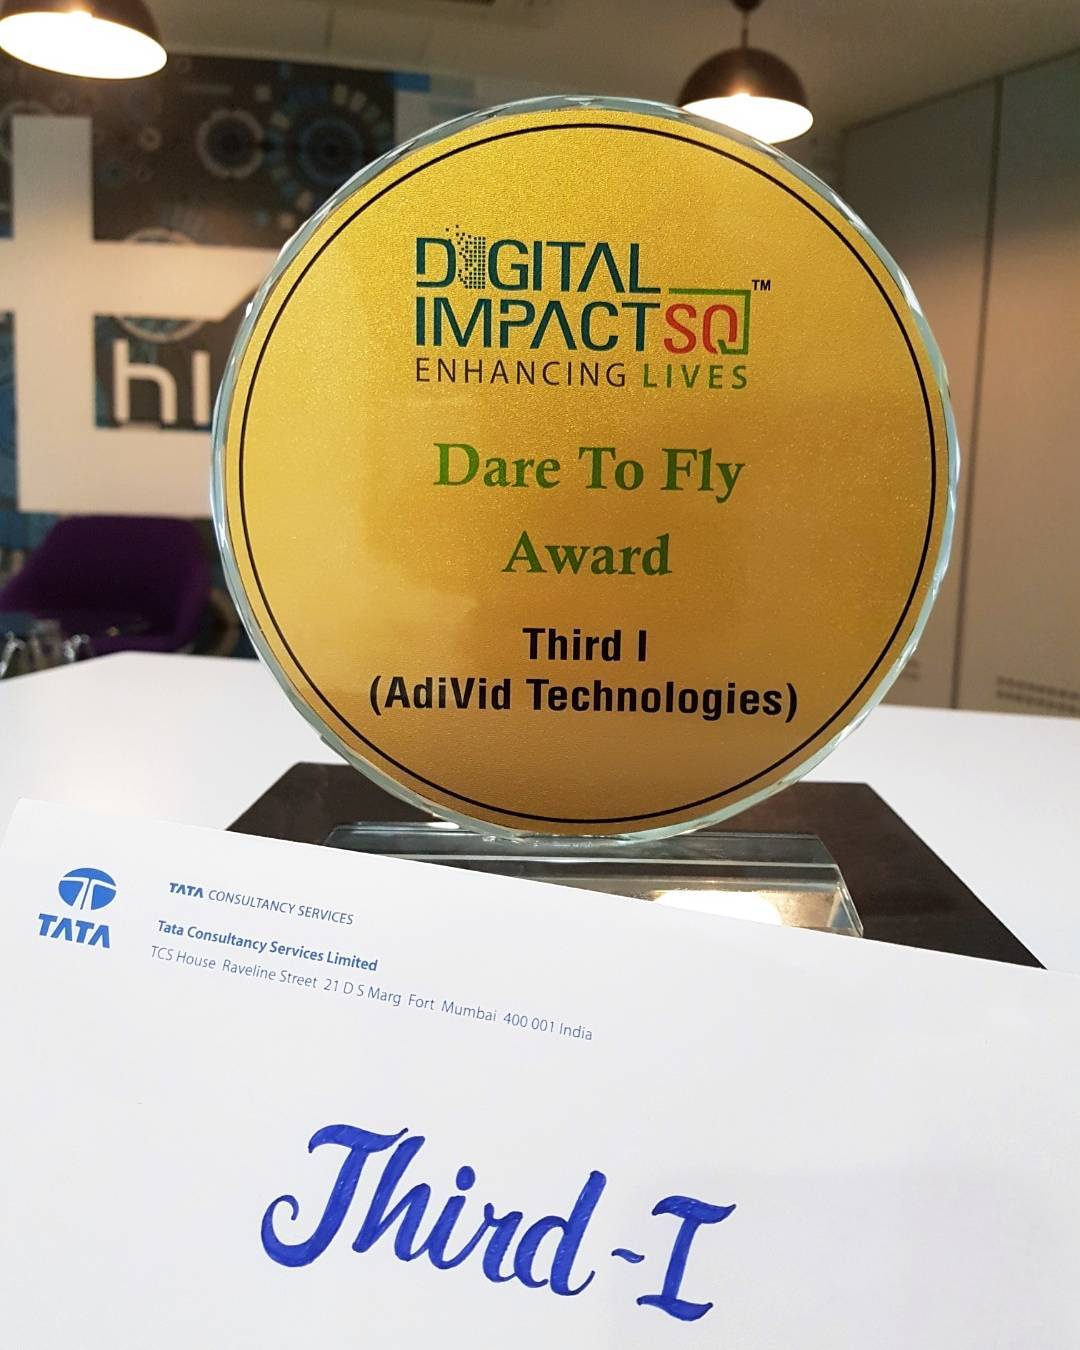 Dare to Fly Award